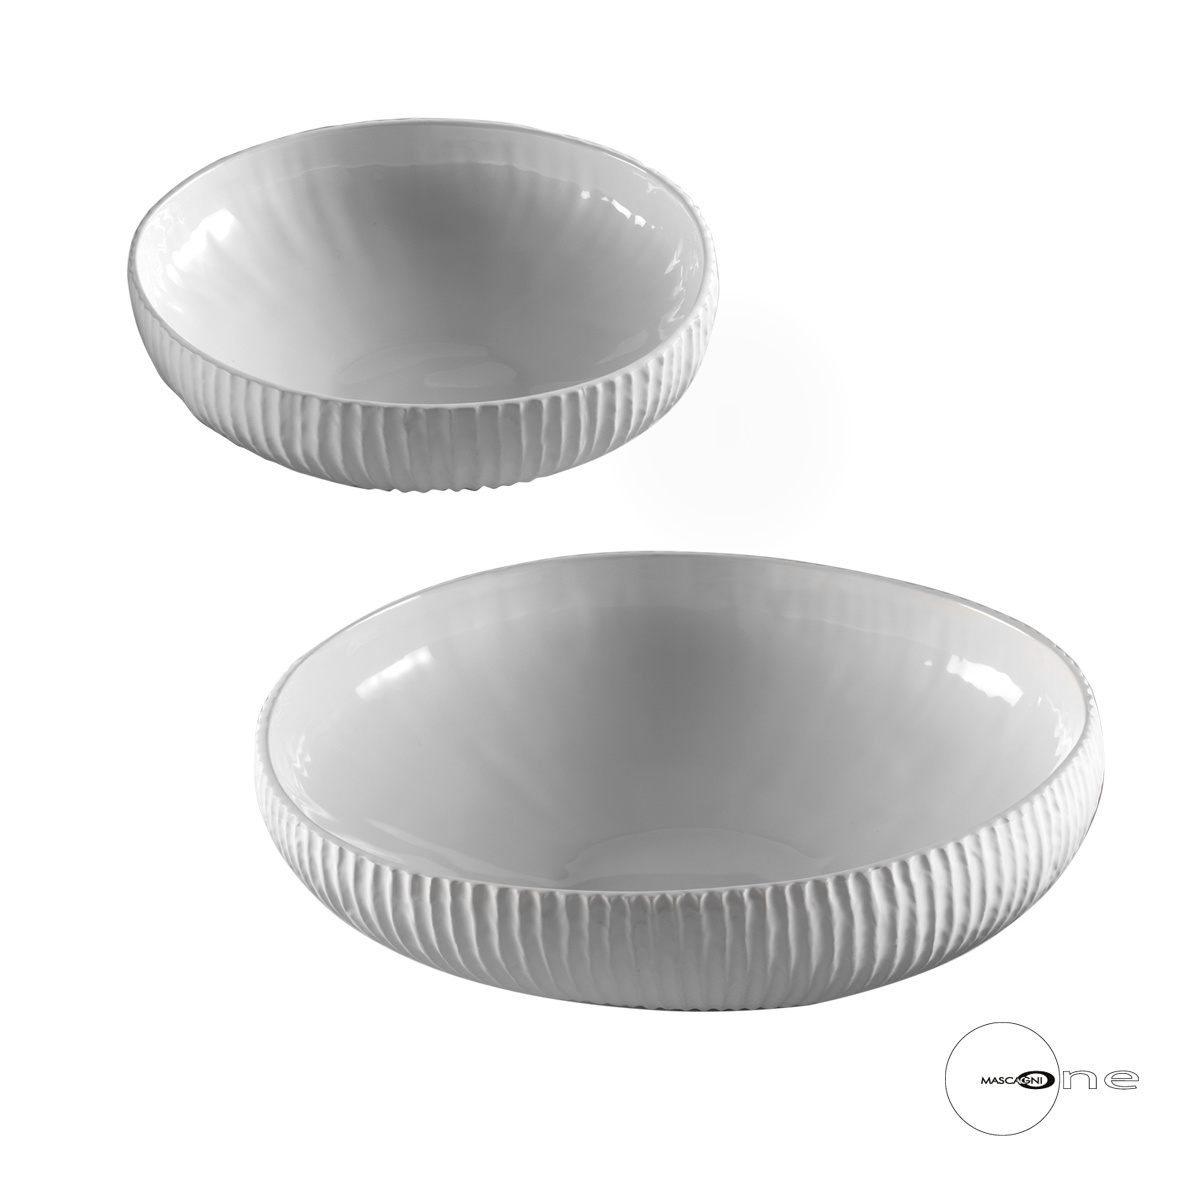 Art Mascagni O1419 SET 2 BOWL - COL.WHITE